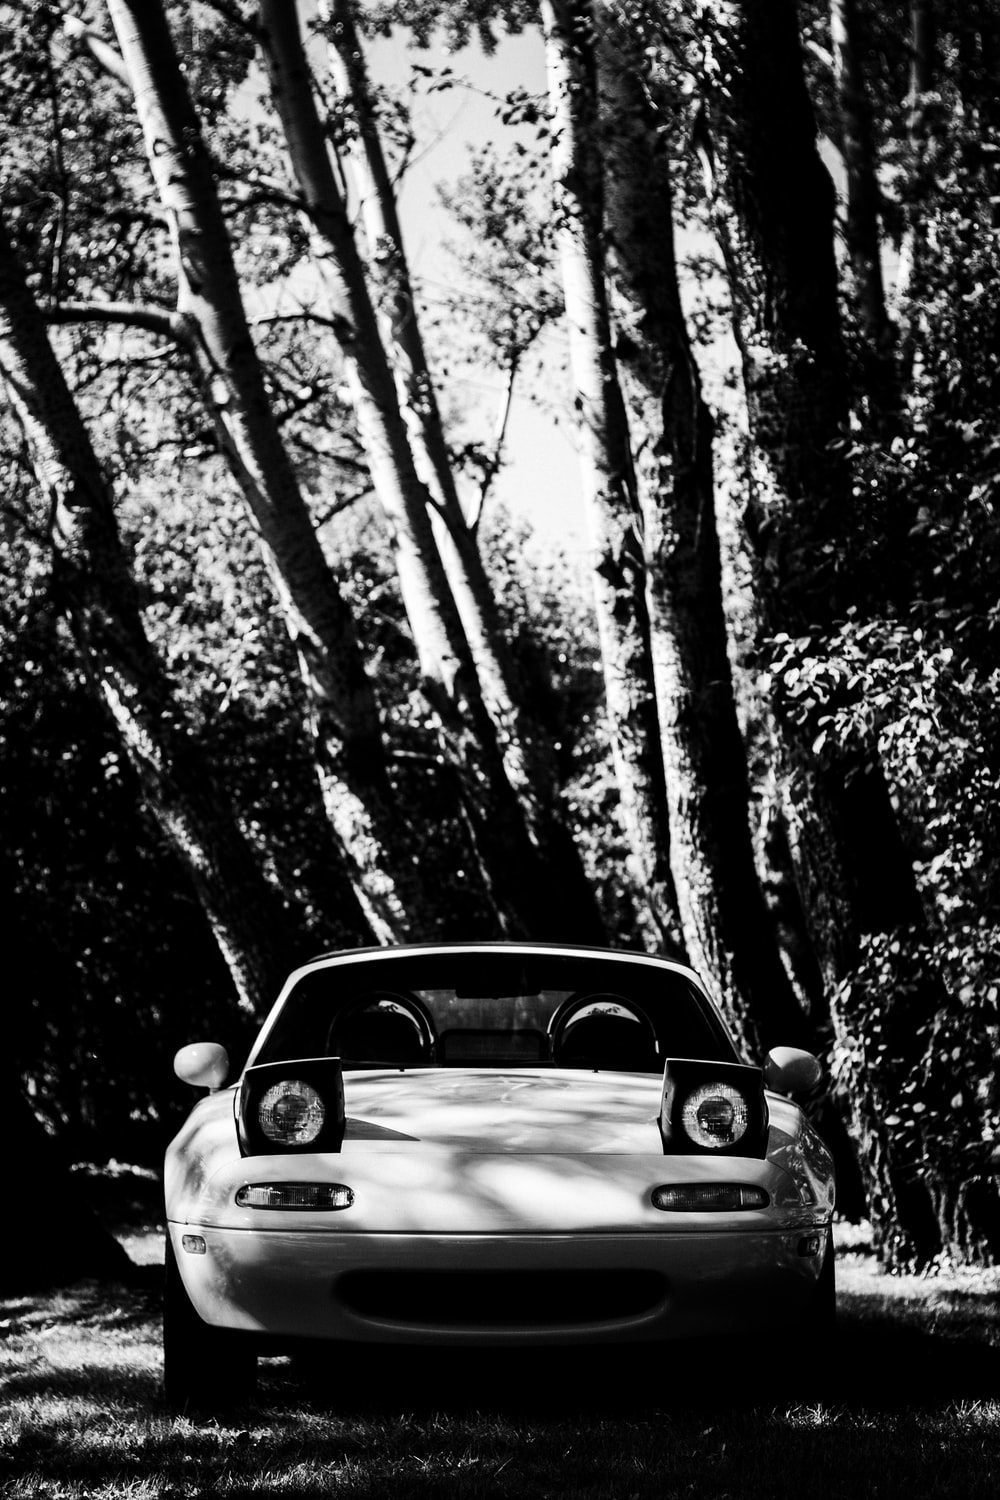 greyscale photography of vehicle near tree